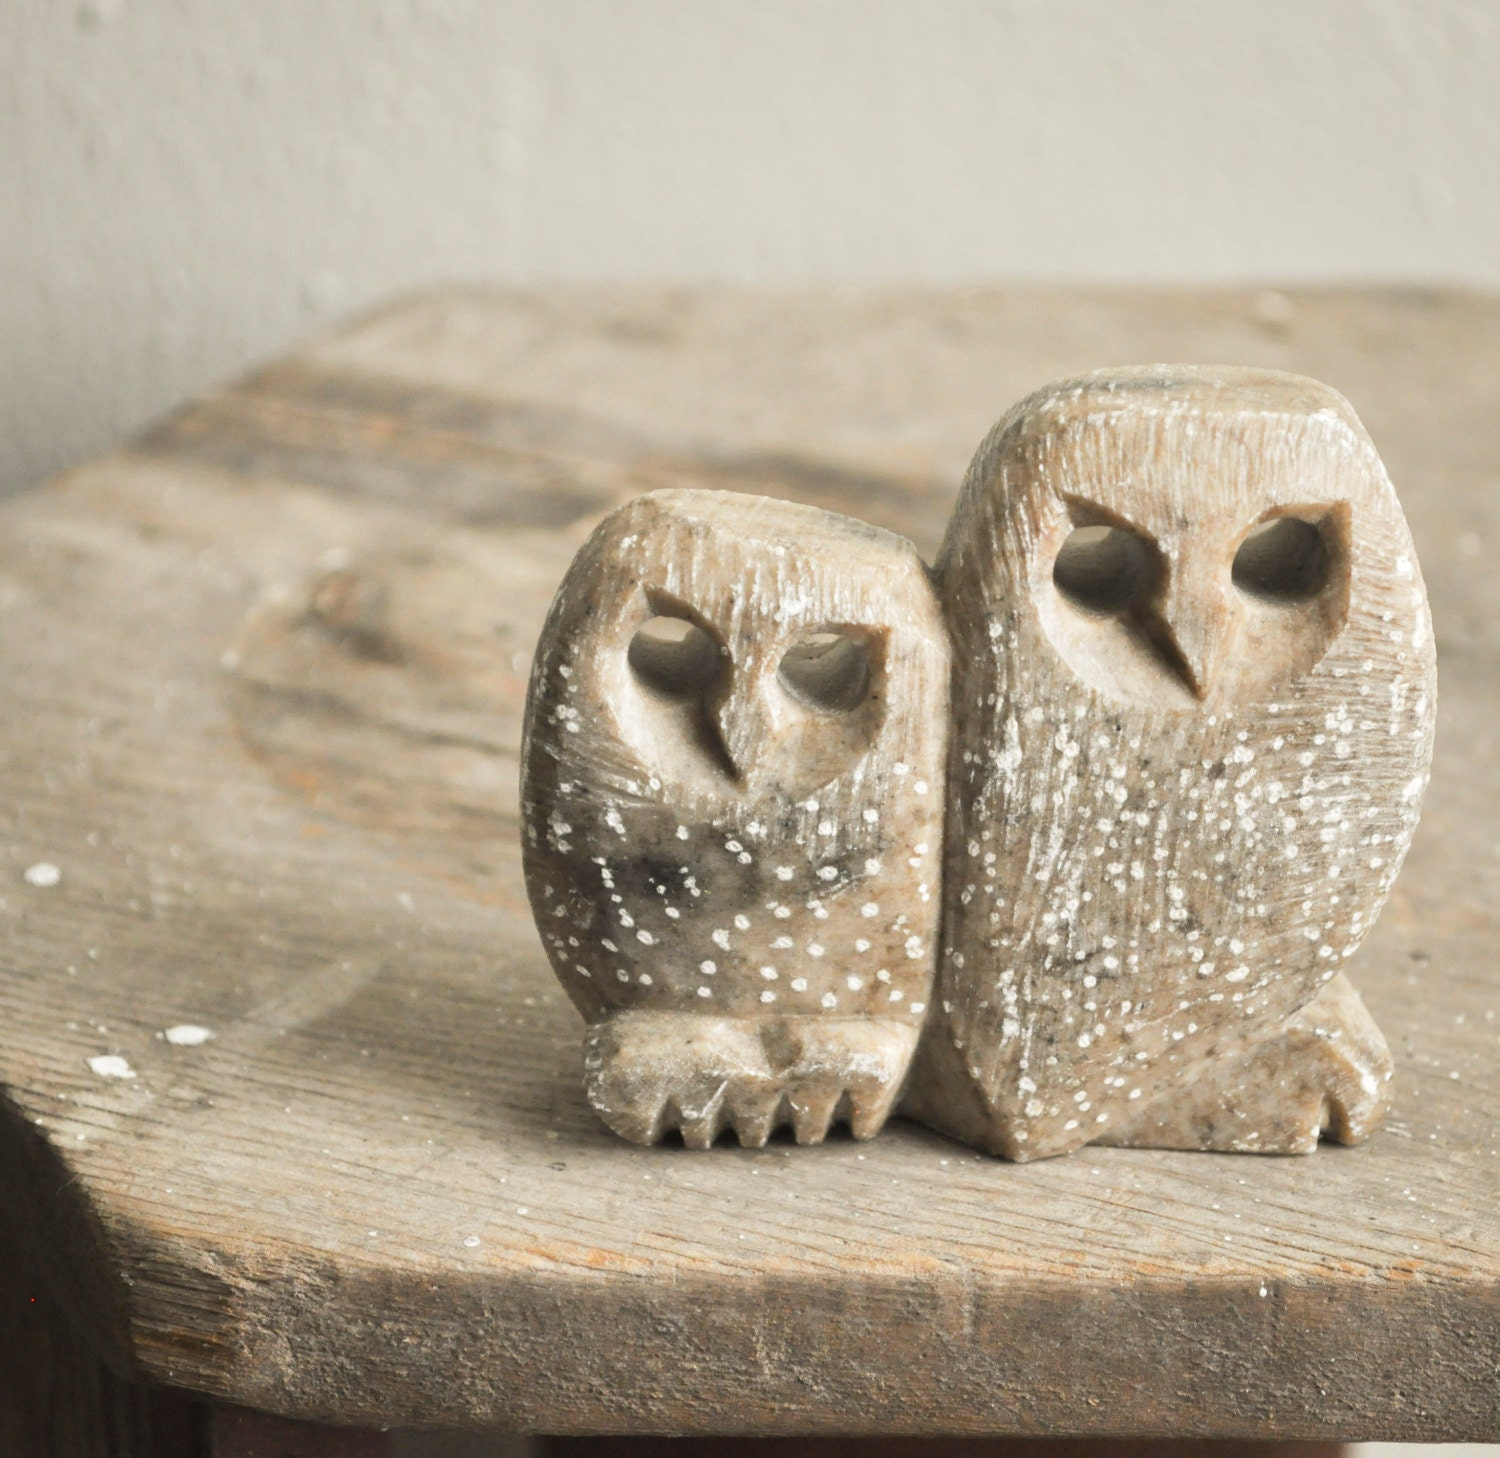 Vintage carved soapstone spotted owl figurine made by